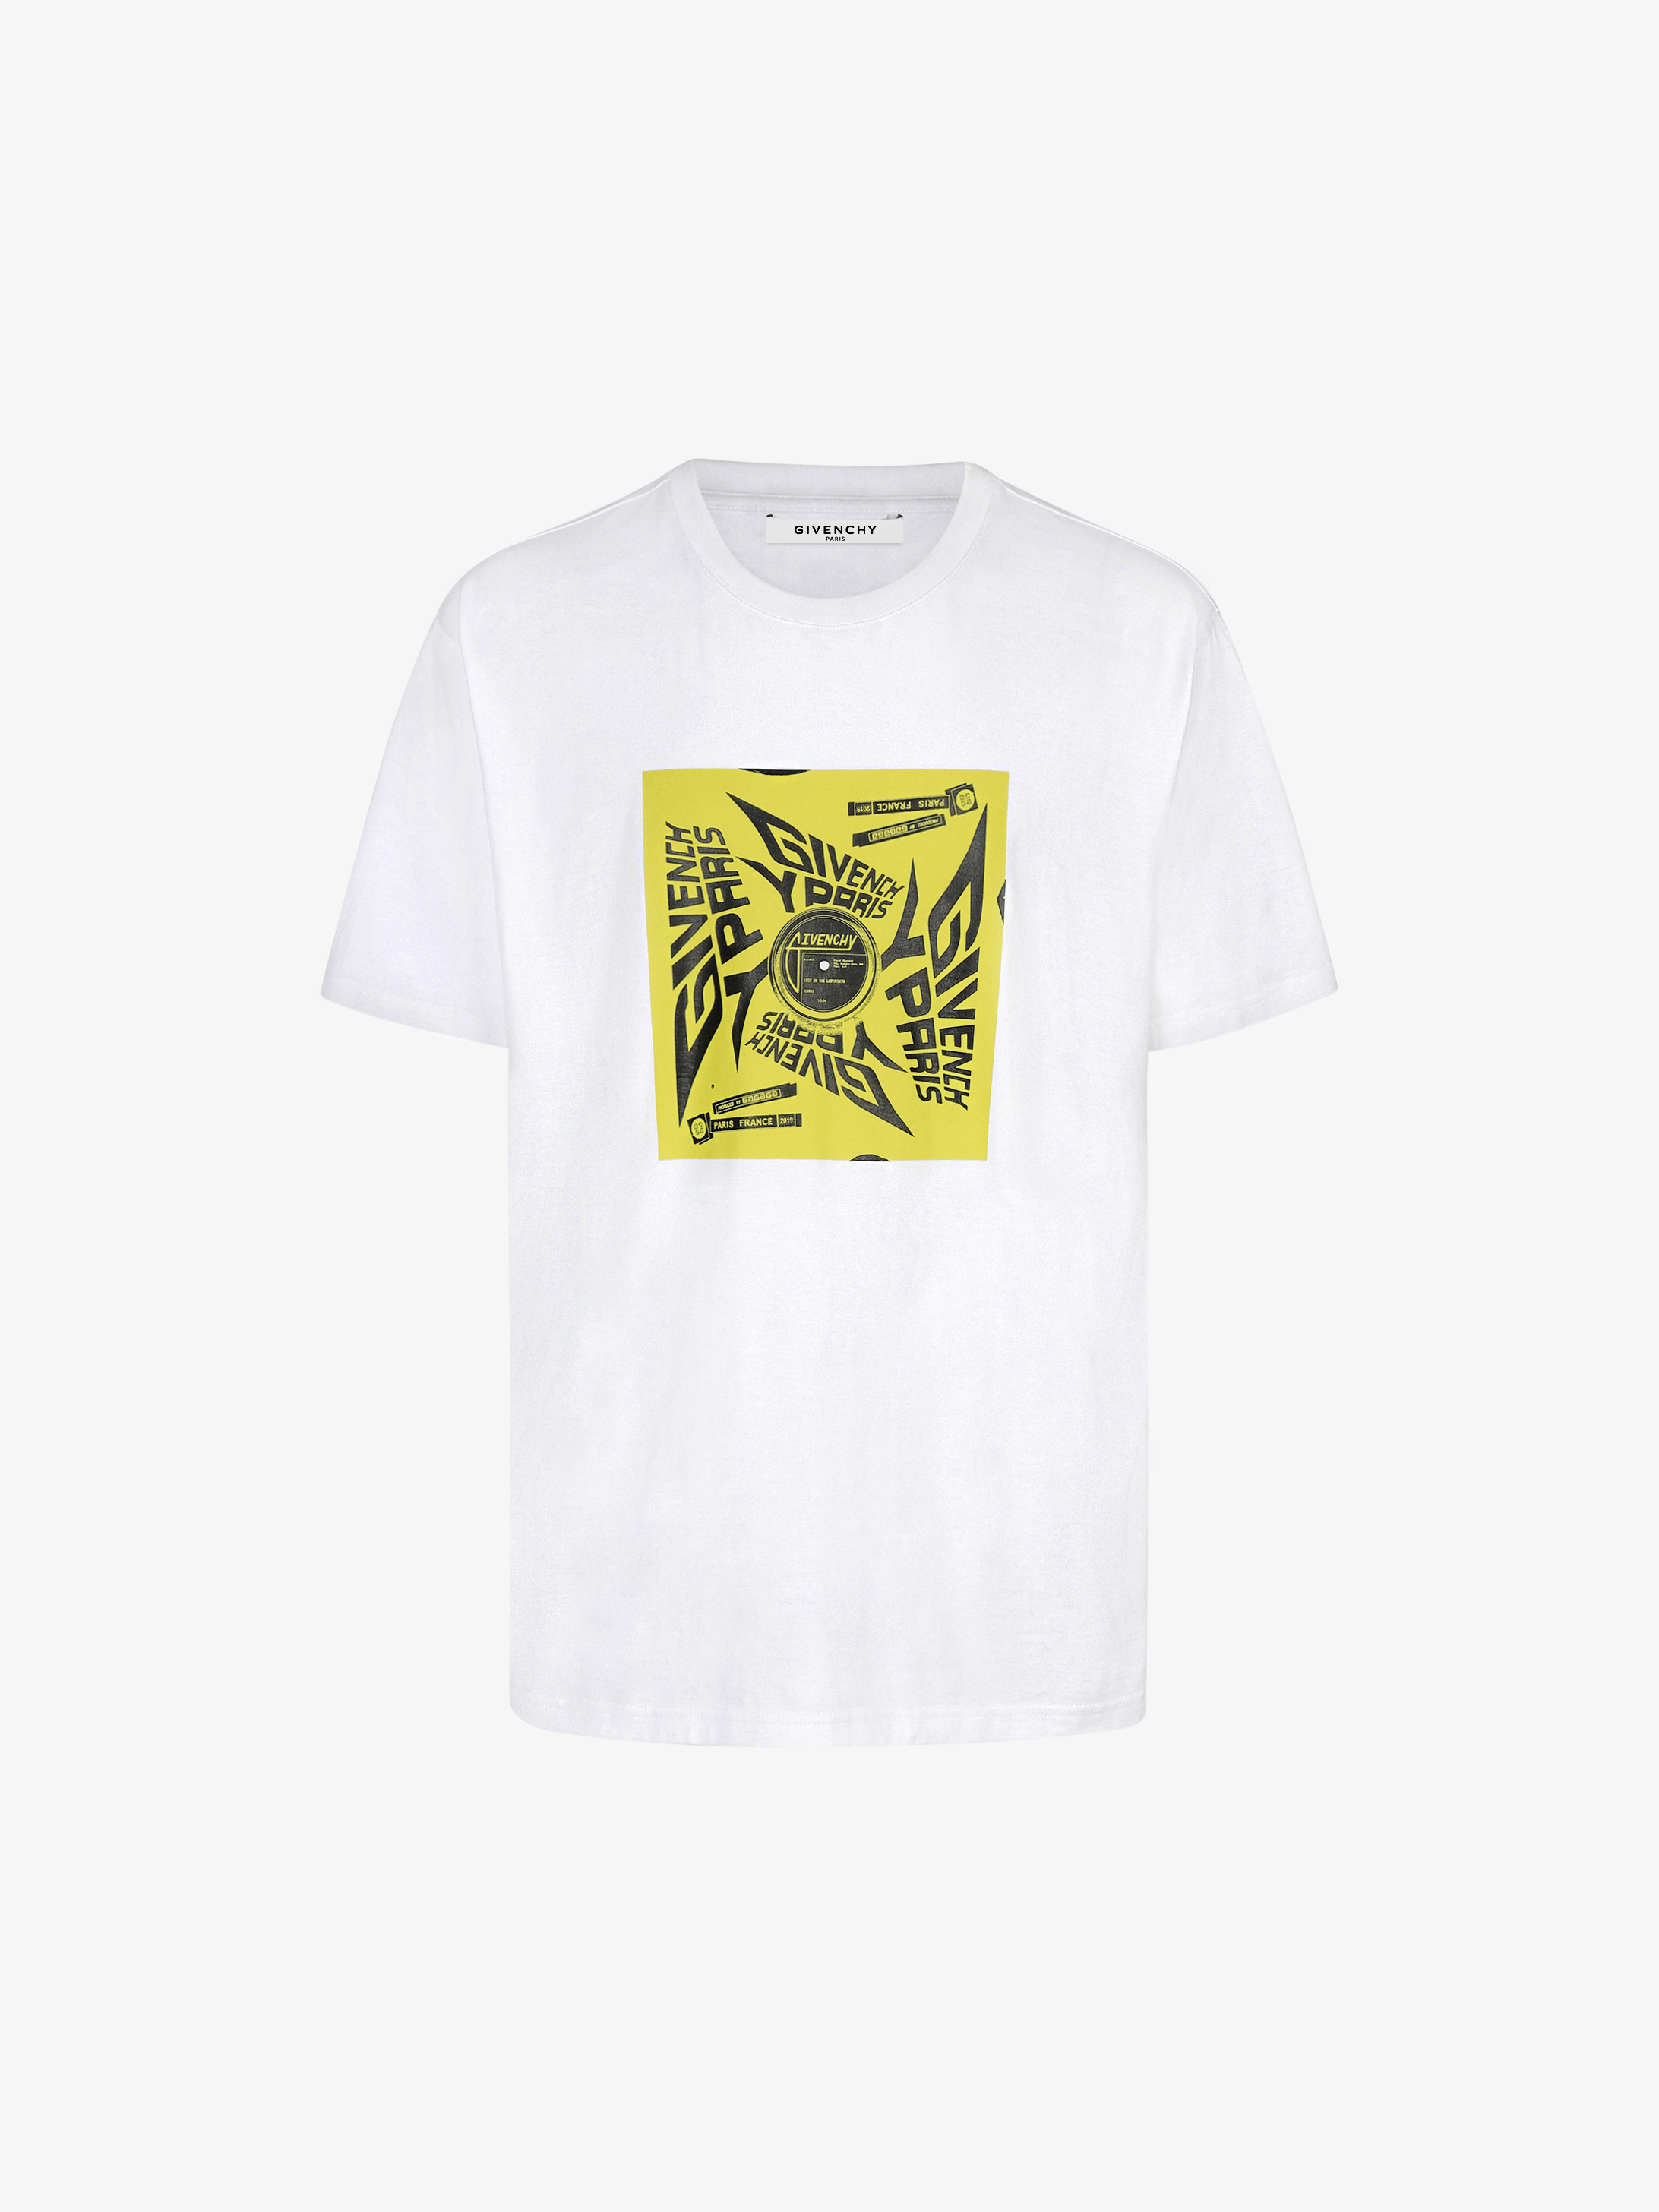 GIVENCHY PARIS sun printed T-shirt